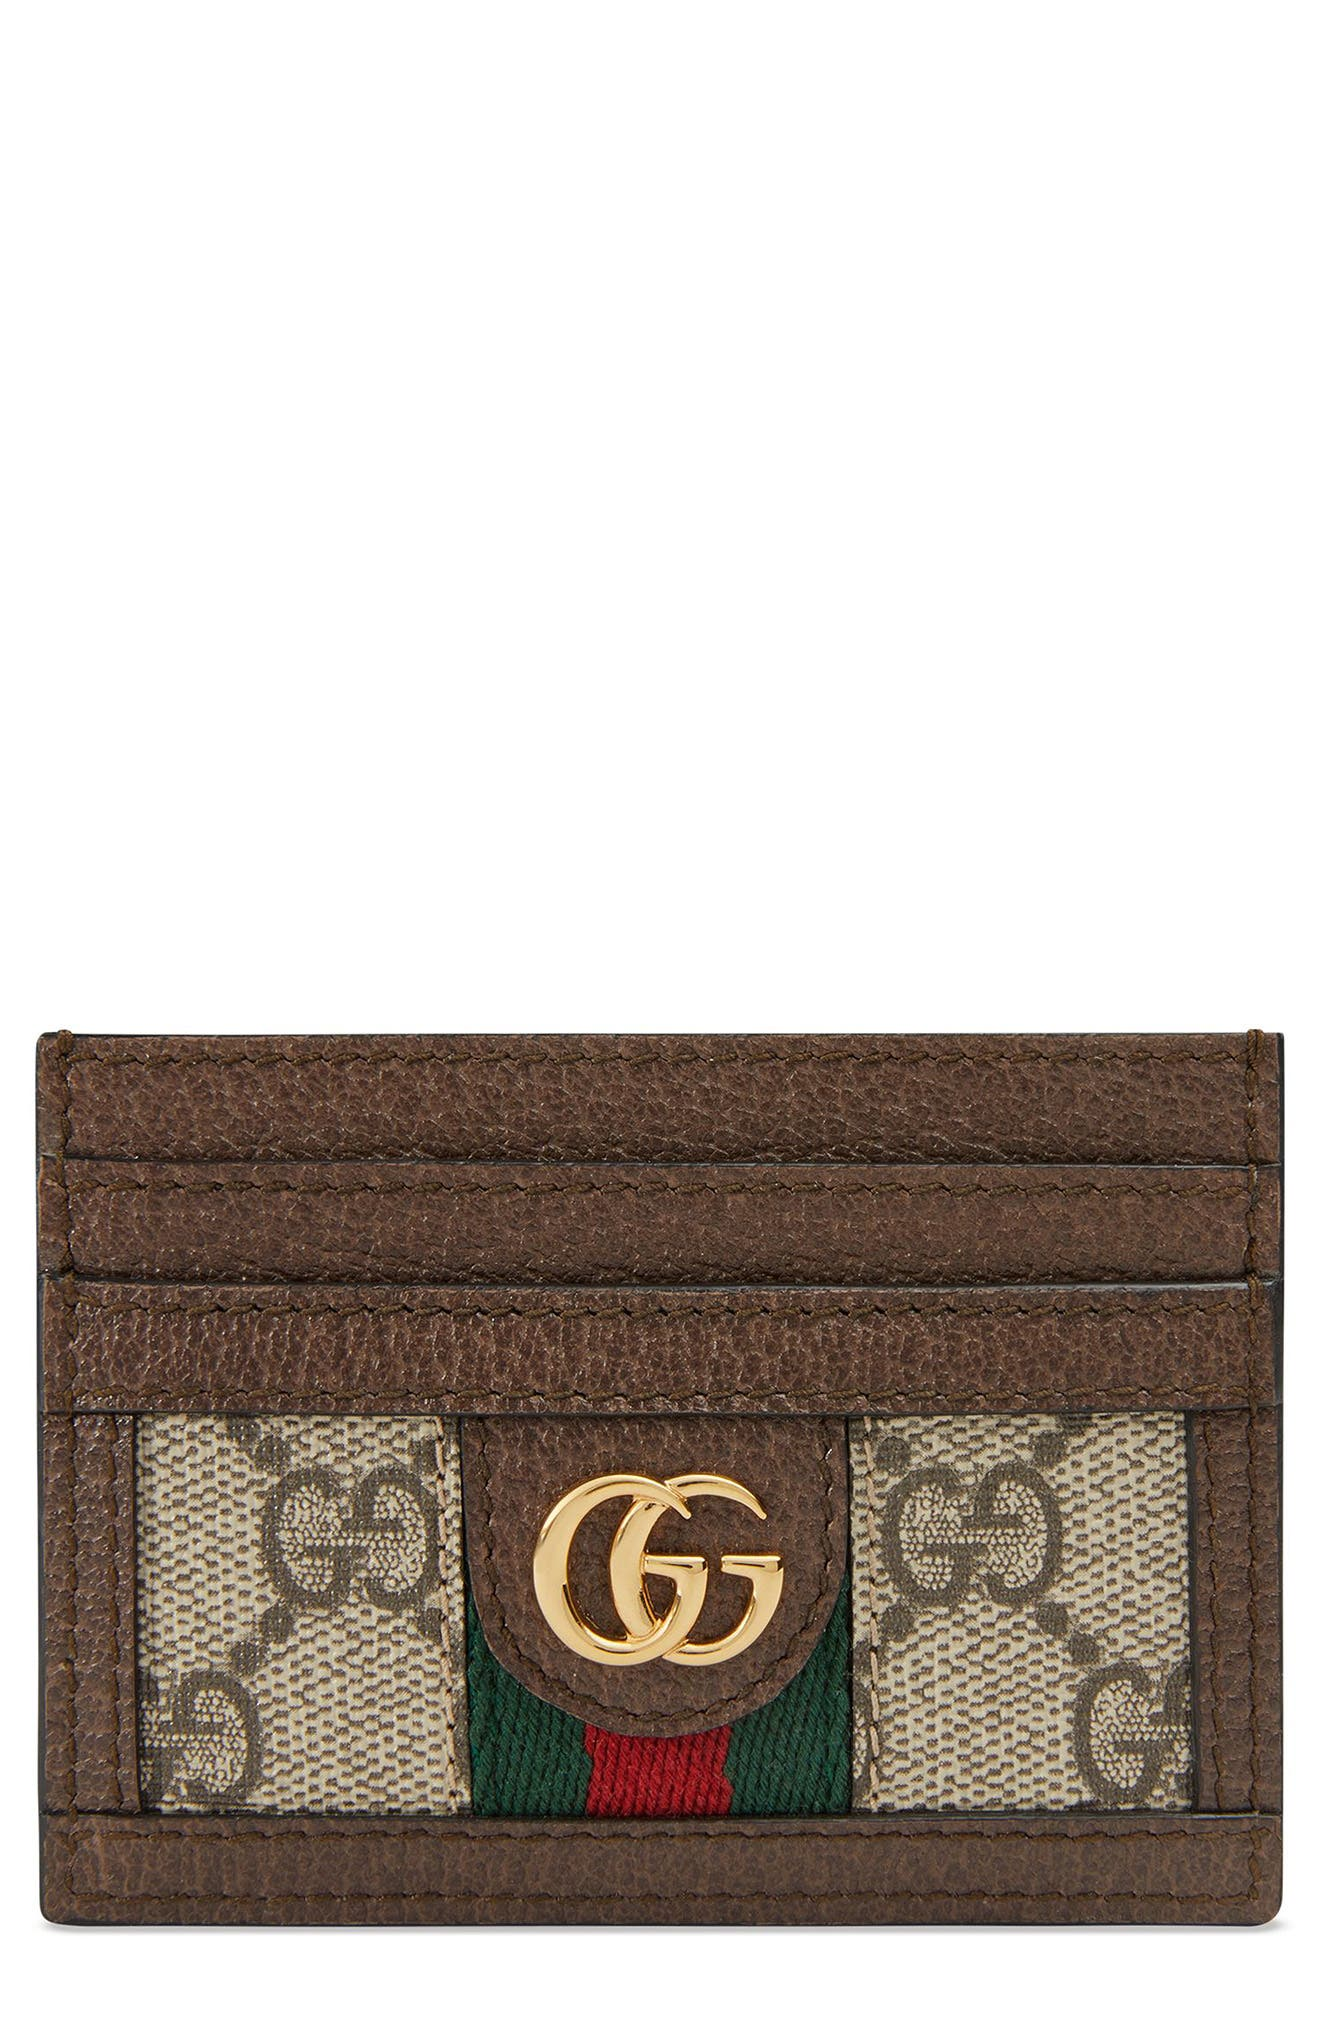 Ophidia GG Supreme Card Case,                             Main thumbnail 1, color,                             BEIGE EBONY/ ACERO/ VERT RED